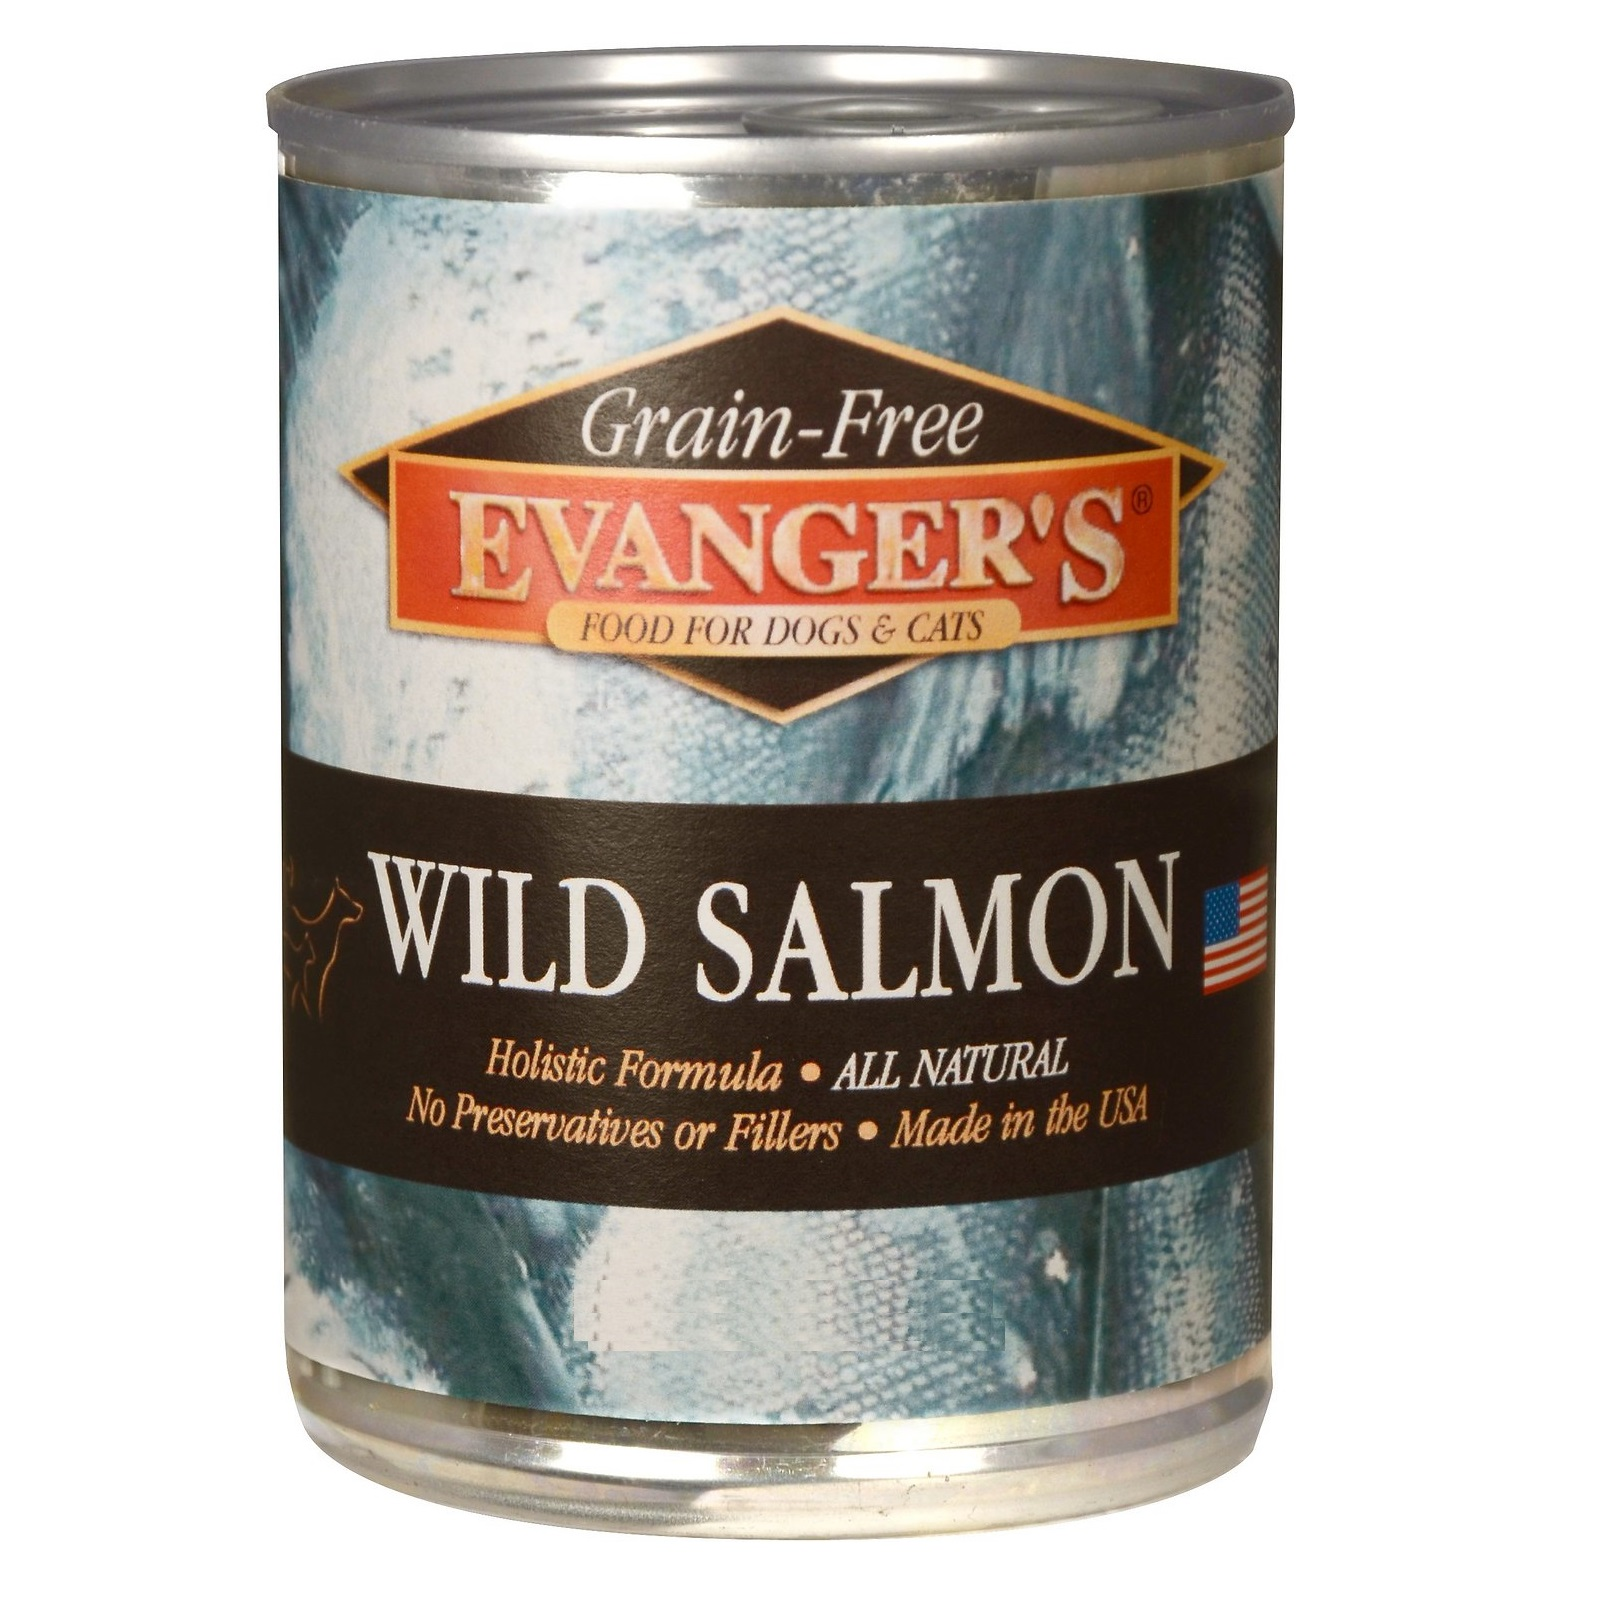 Evanger's Grain-Free Wild Salmon Canned Dog & Cat Food 13z, 12